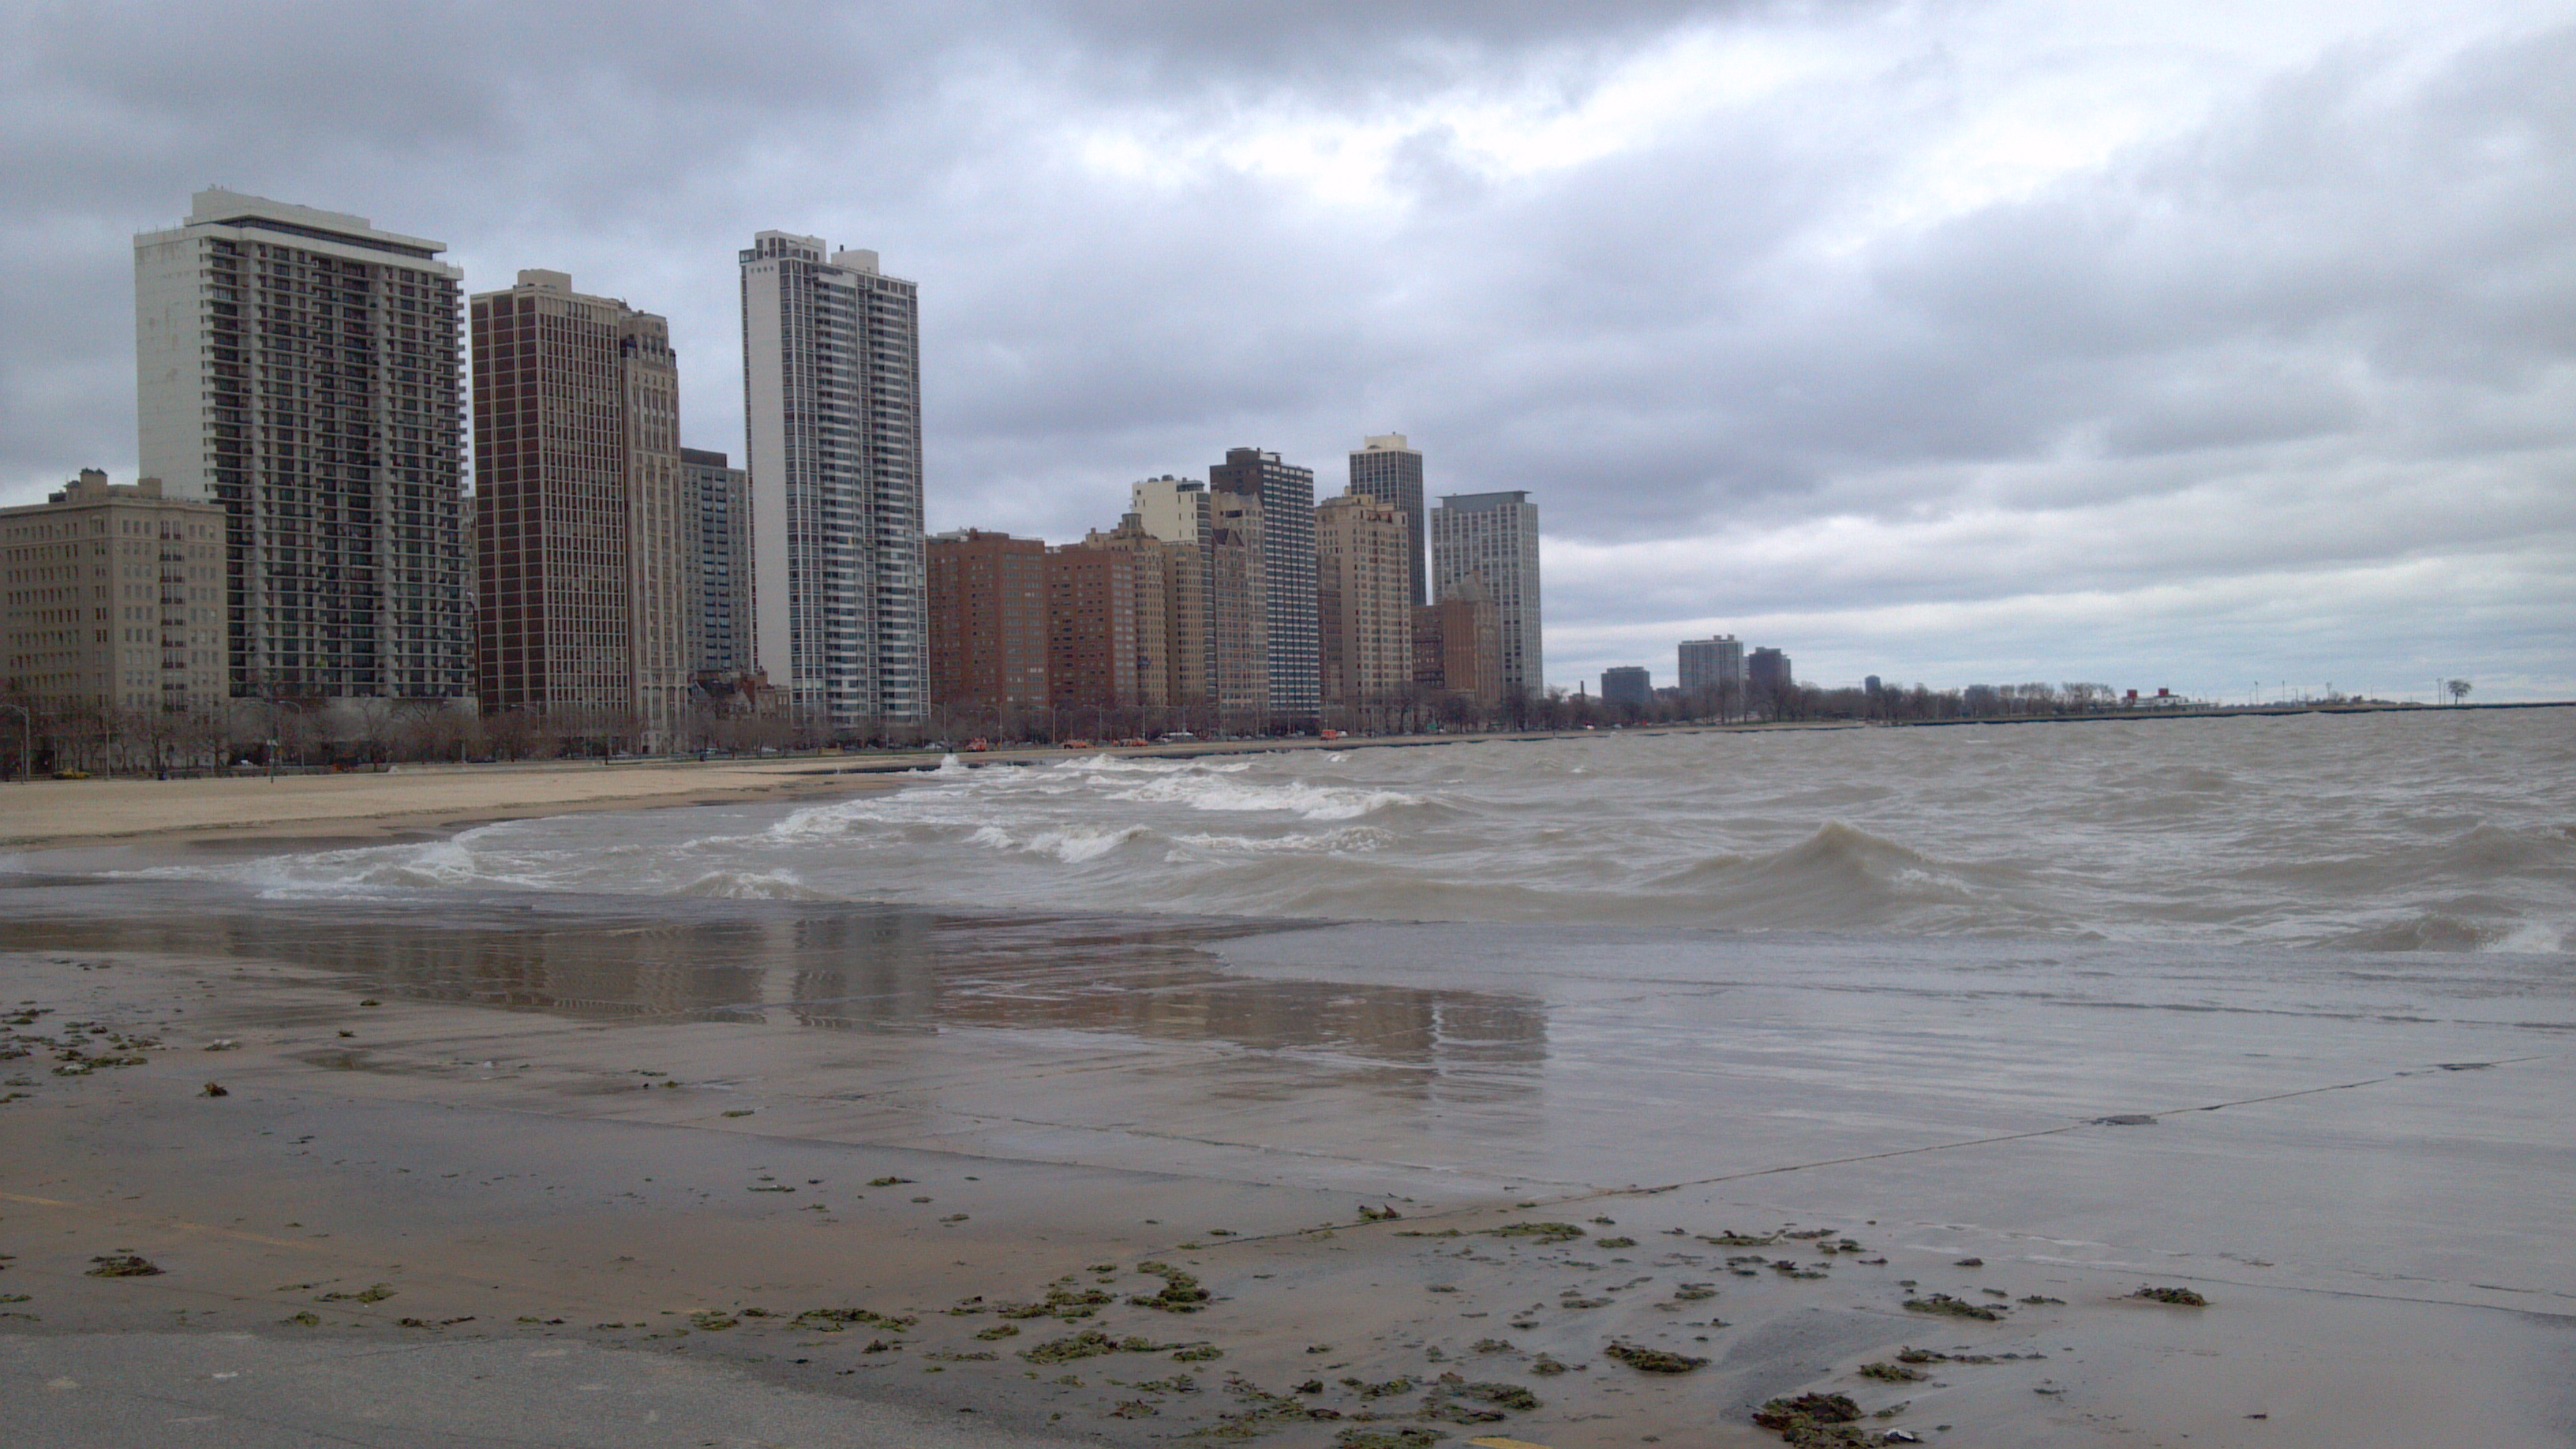 How Far Is The Mccormick Plce From North Avenue Beach